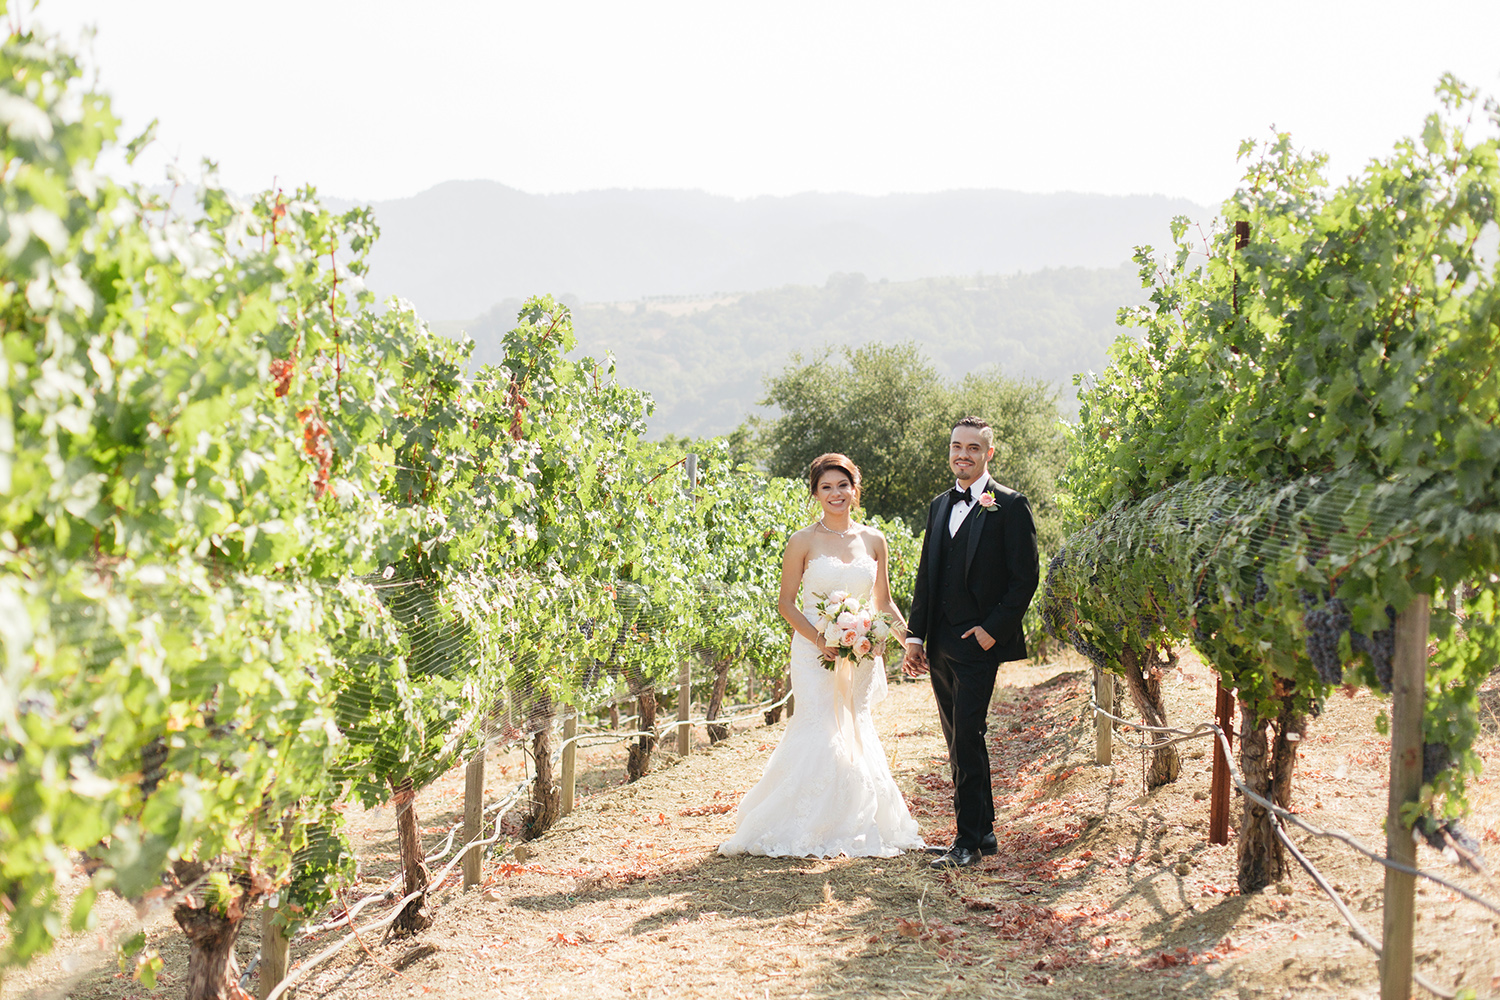 Bride and groom posing for a photo vineyards in Saratoga, California.